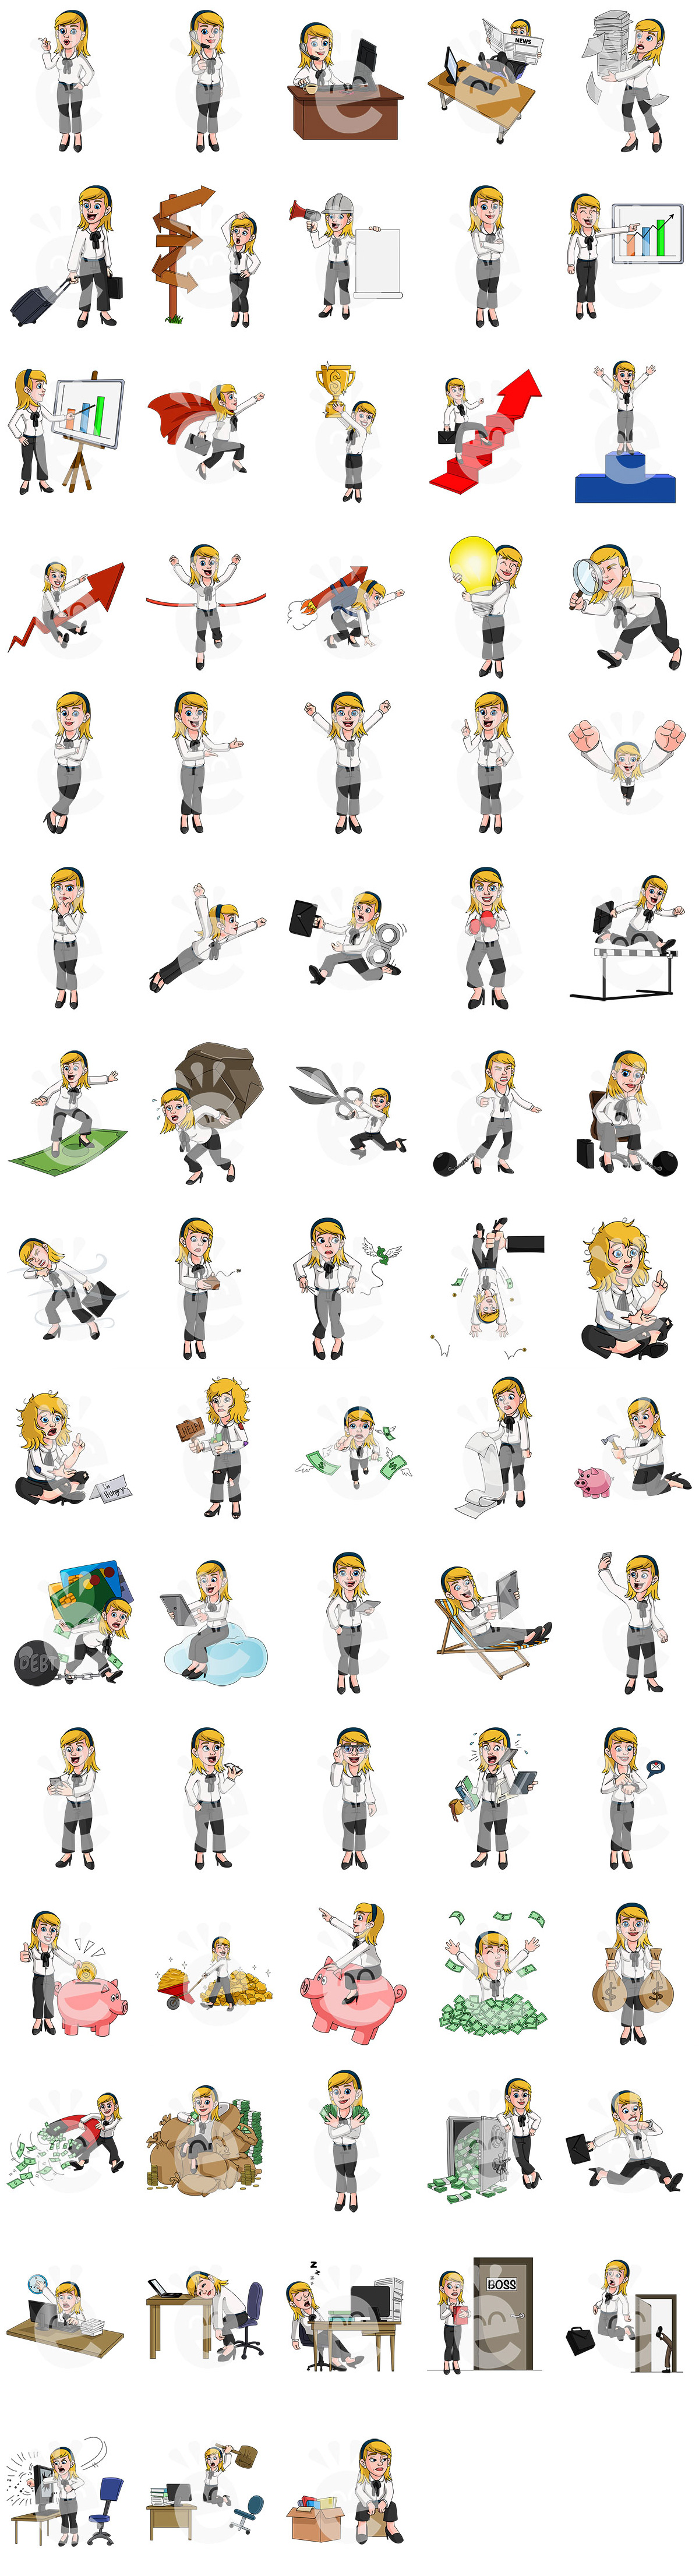 Color Preview Of The 72 SVG Poses Of Emily The Businesswoman